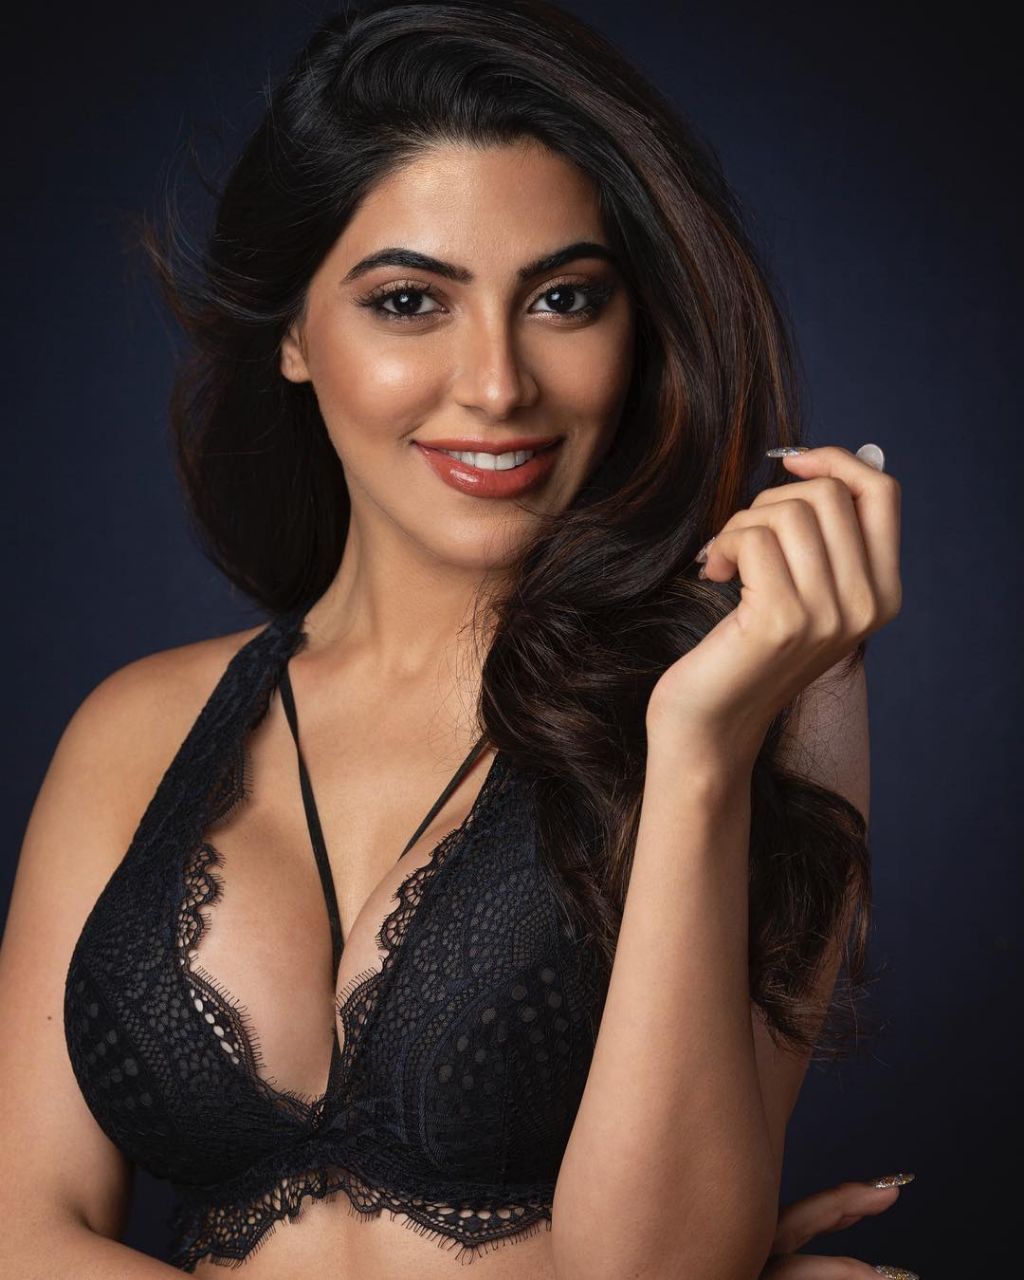 Nikki Tamboli in Black Lingerie Smiling Beauty HD Pics Must See